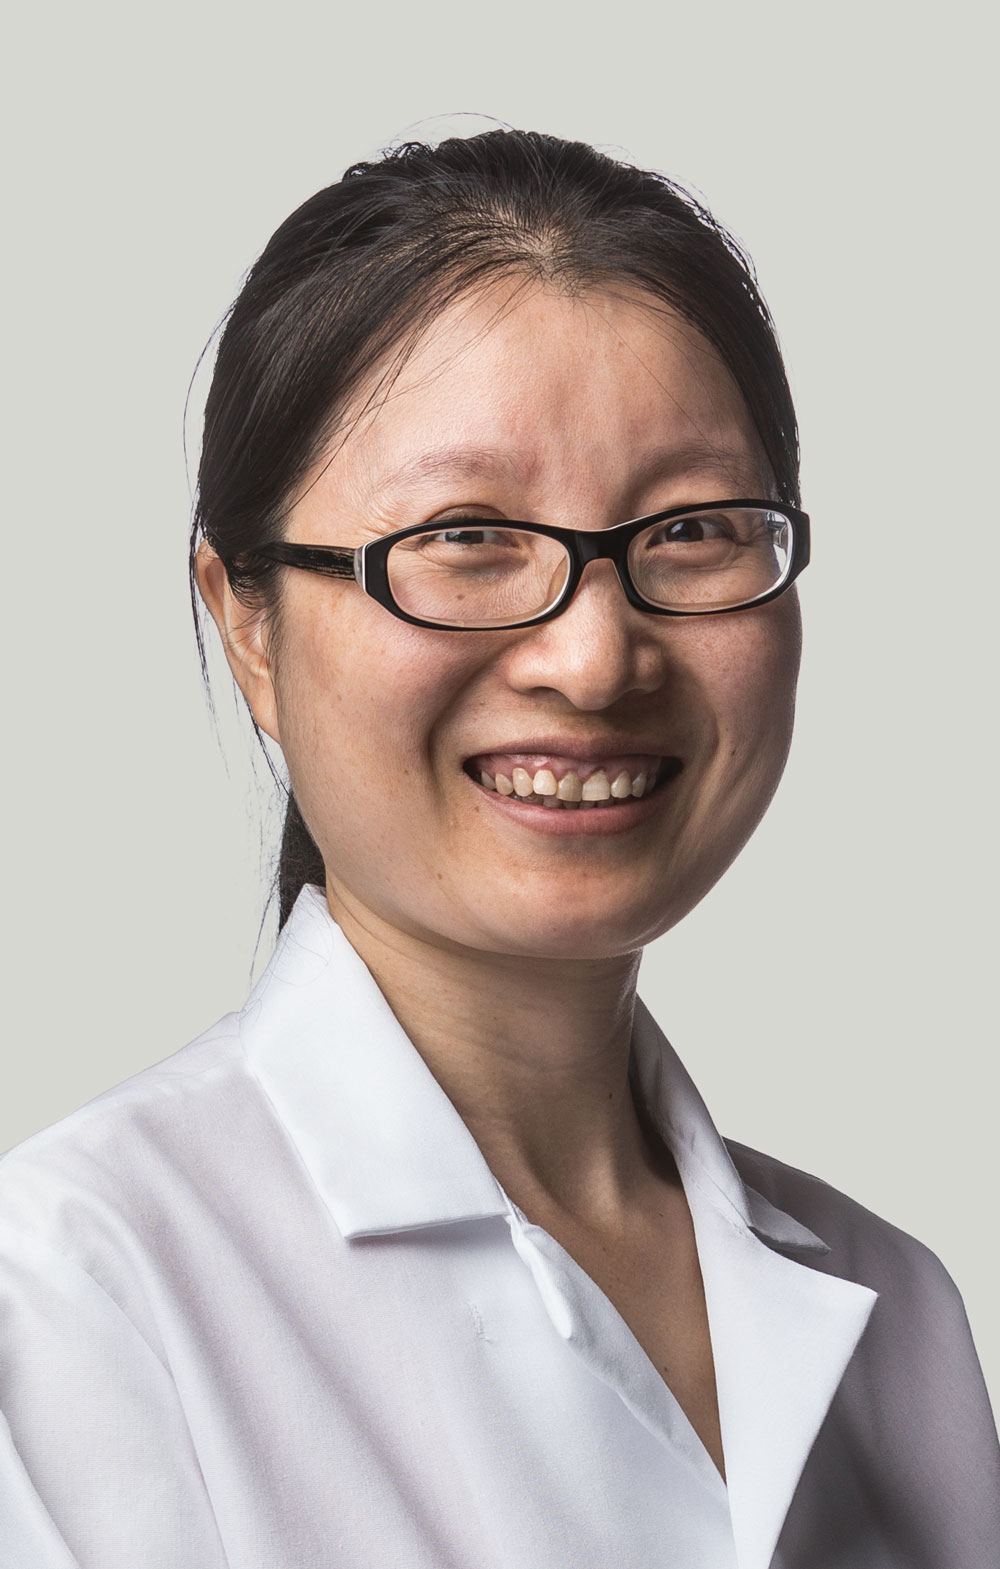 Miao Chen, Ph.D., Postdoctoral Fellow in the Transformation and Genome Editing Laboratory